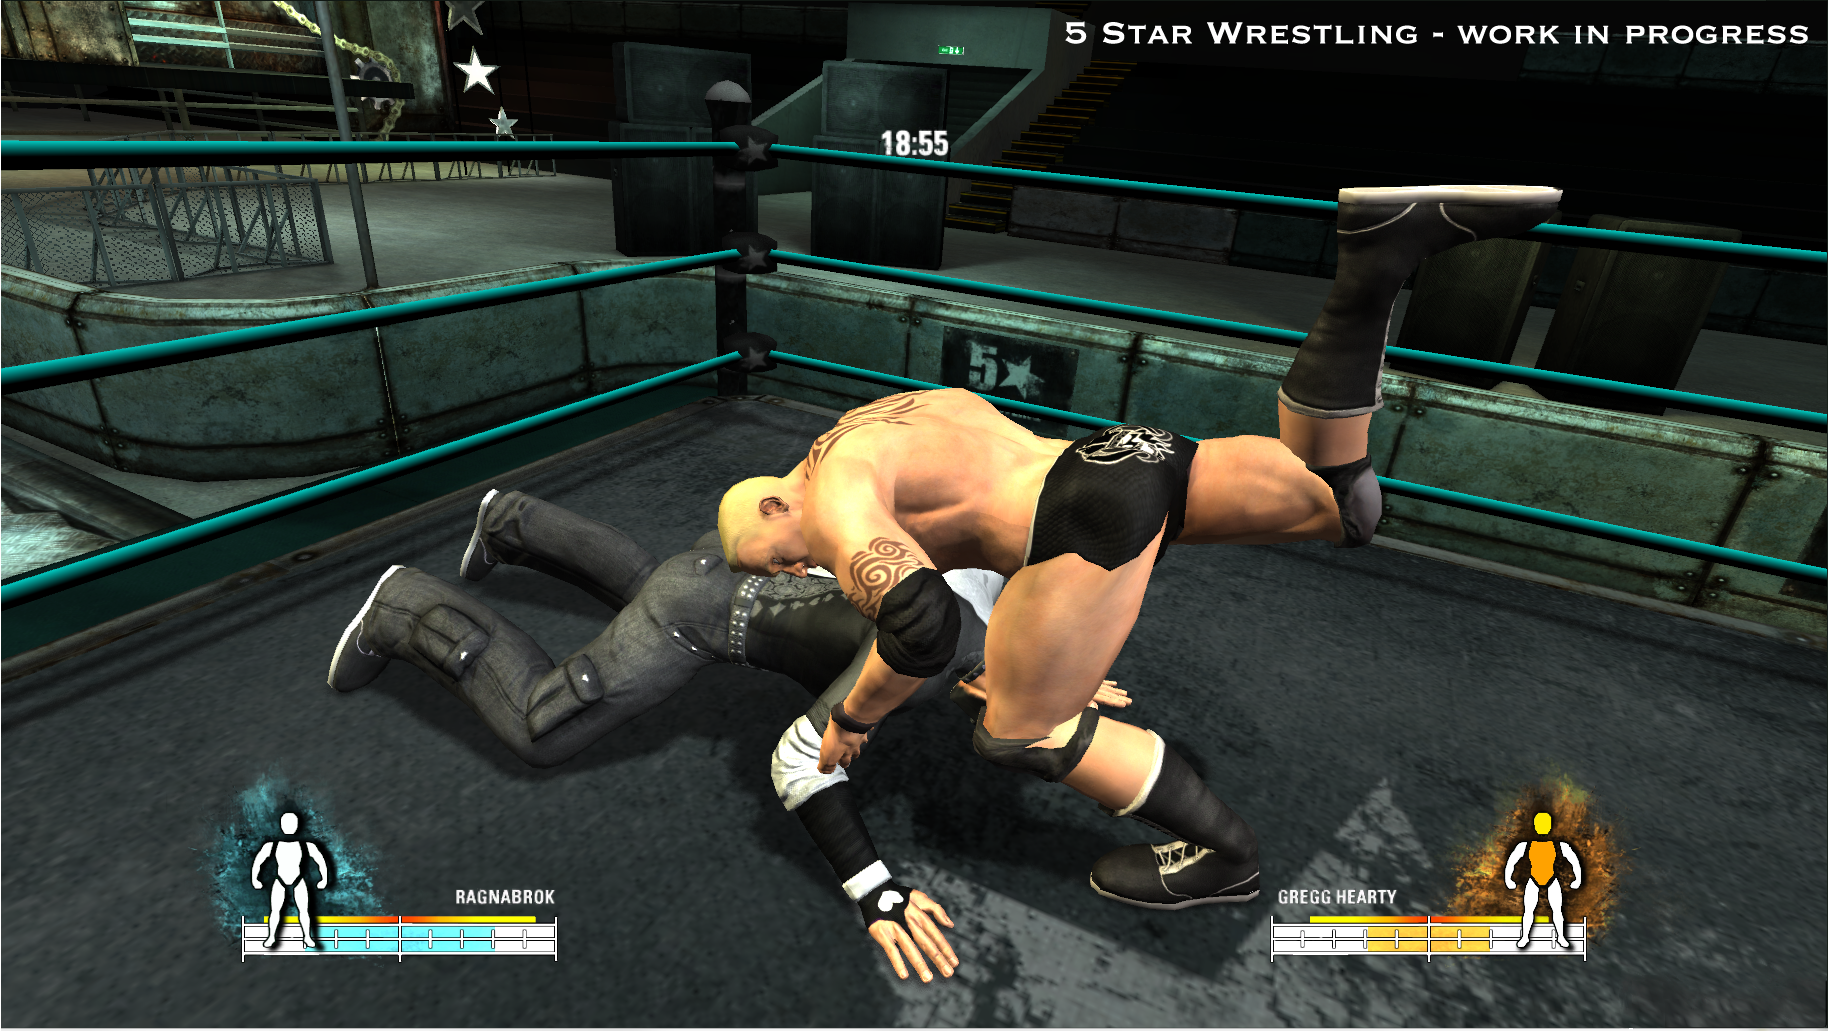 5 star wrestling for ps3 almost complete new screenshots released